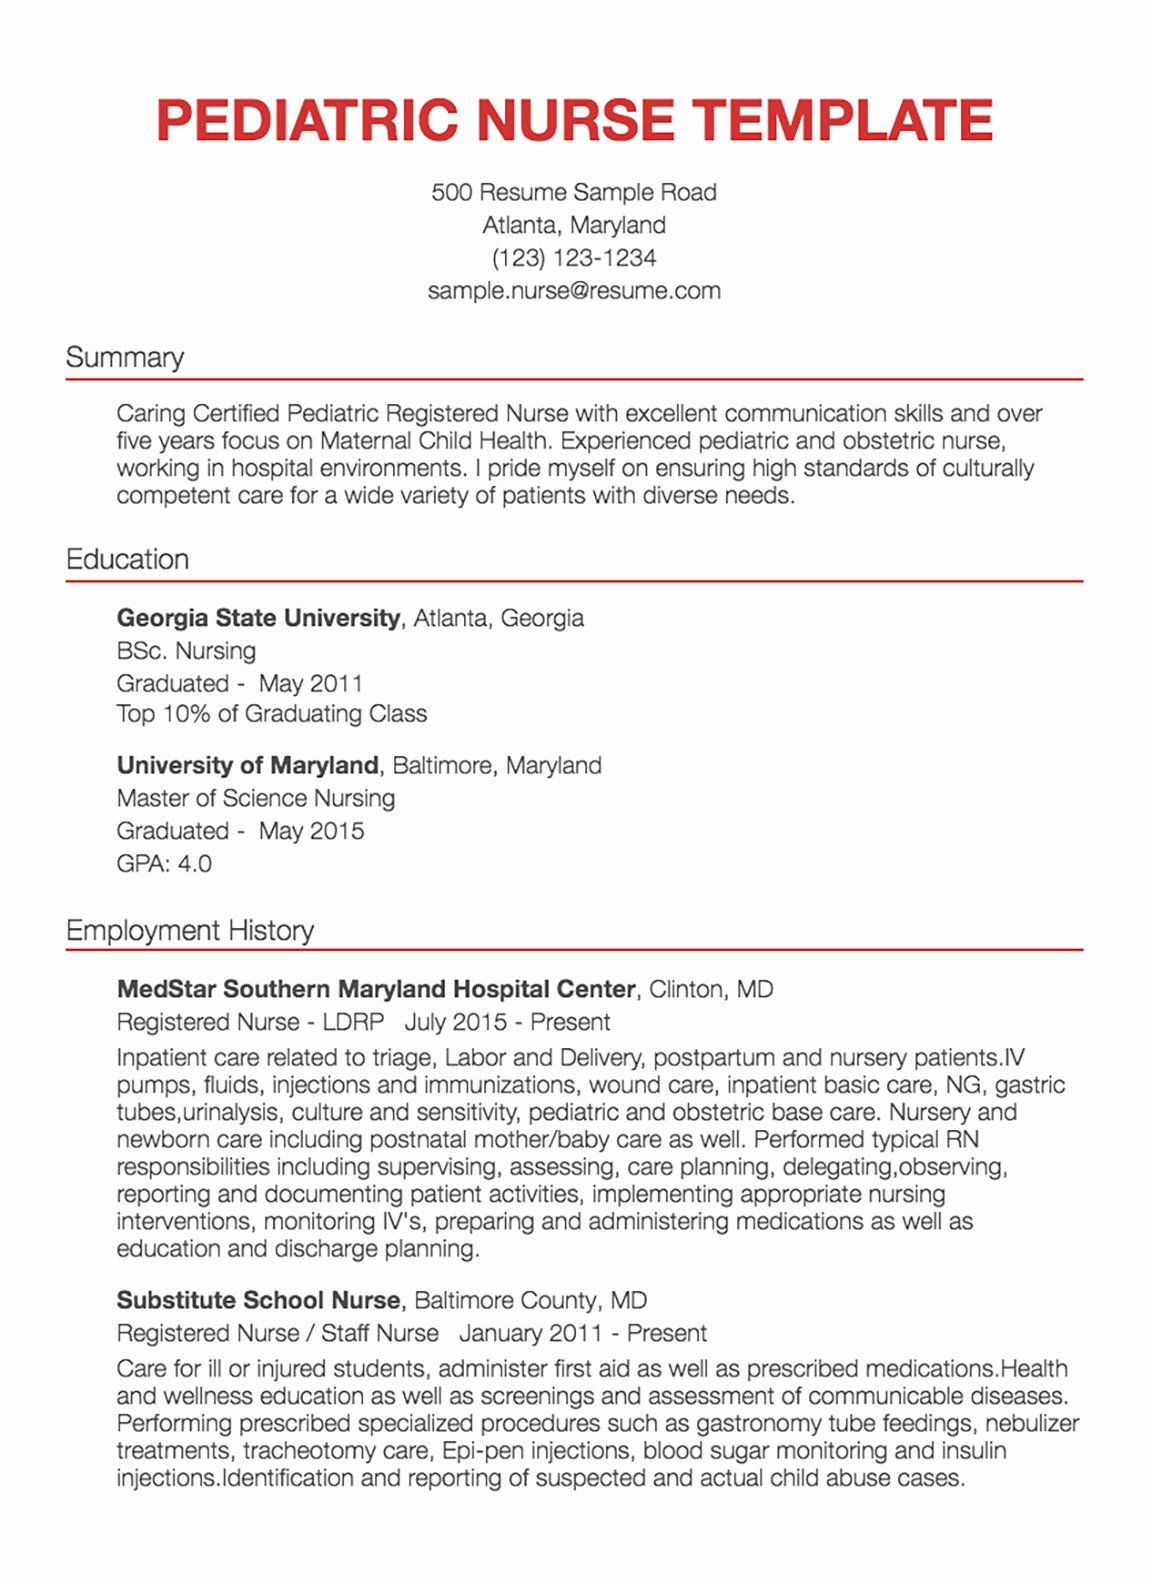 Nursing Clinical Experience Resume New 30 Nursing Resume Examples Samples Written By Rn Manag Registered Nurse Resume Nursing Resume Examples Resume Examples